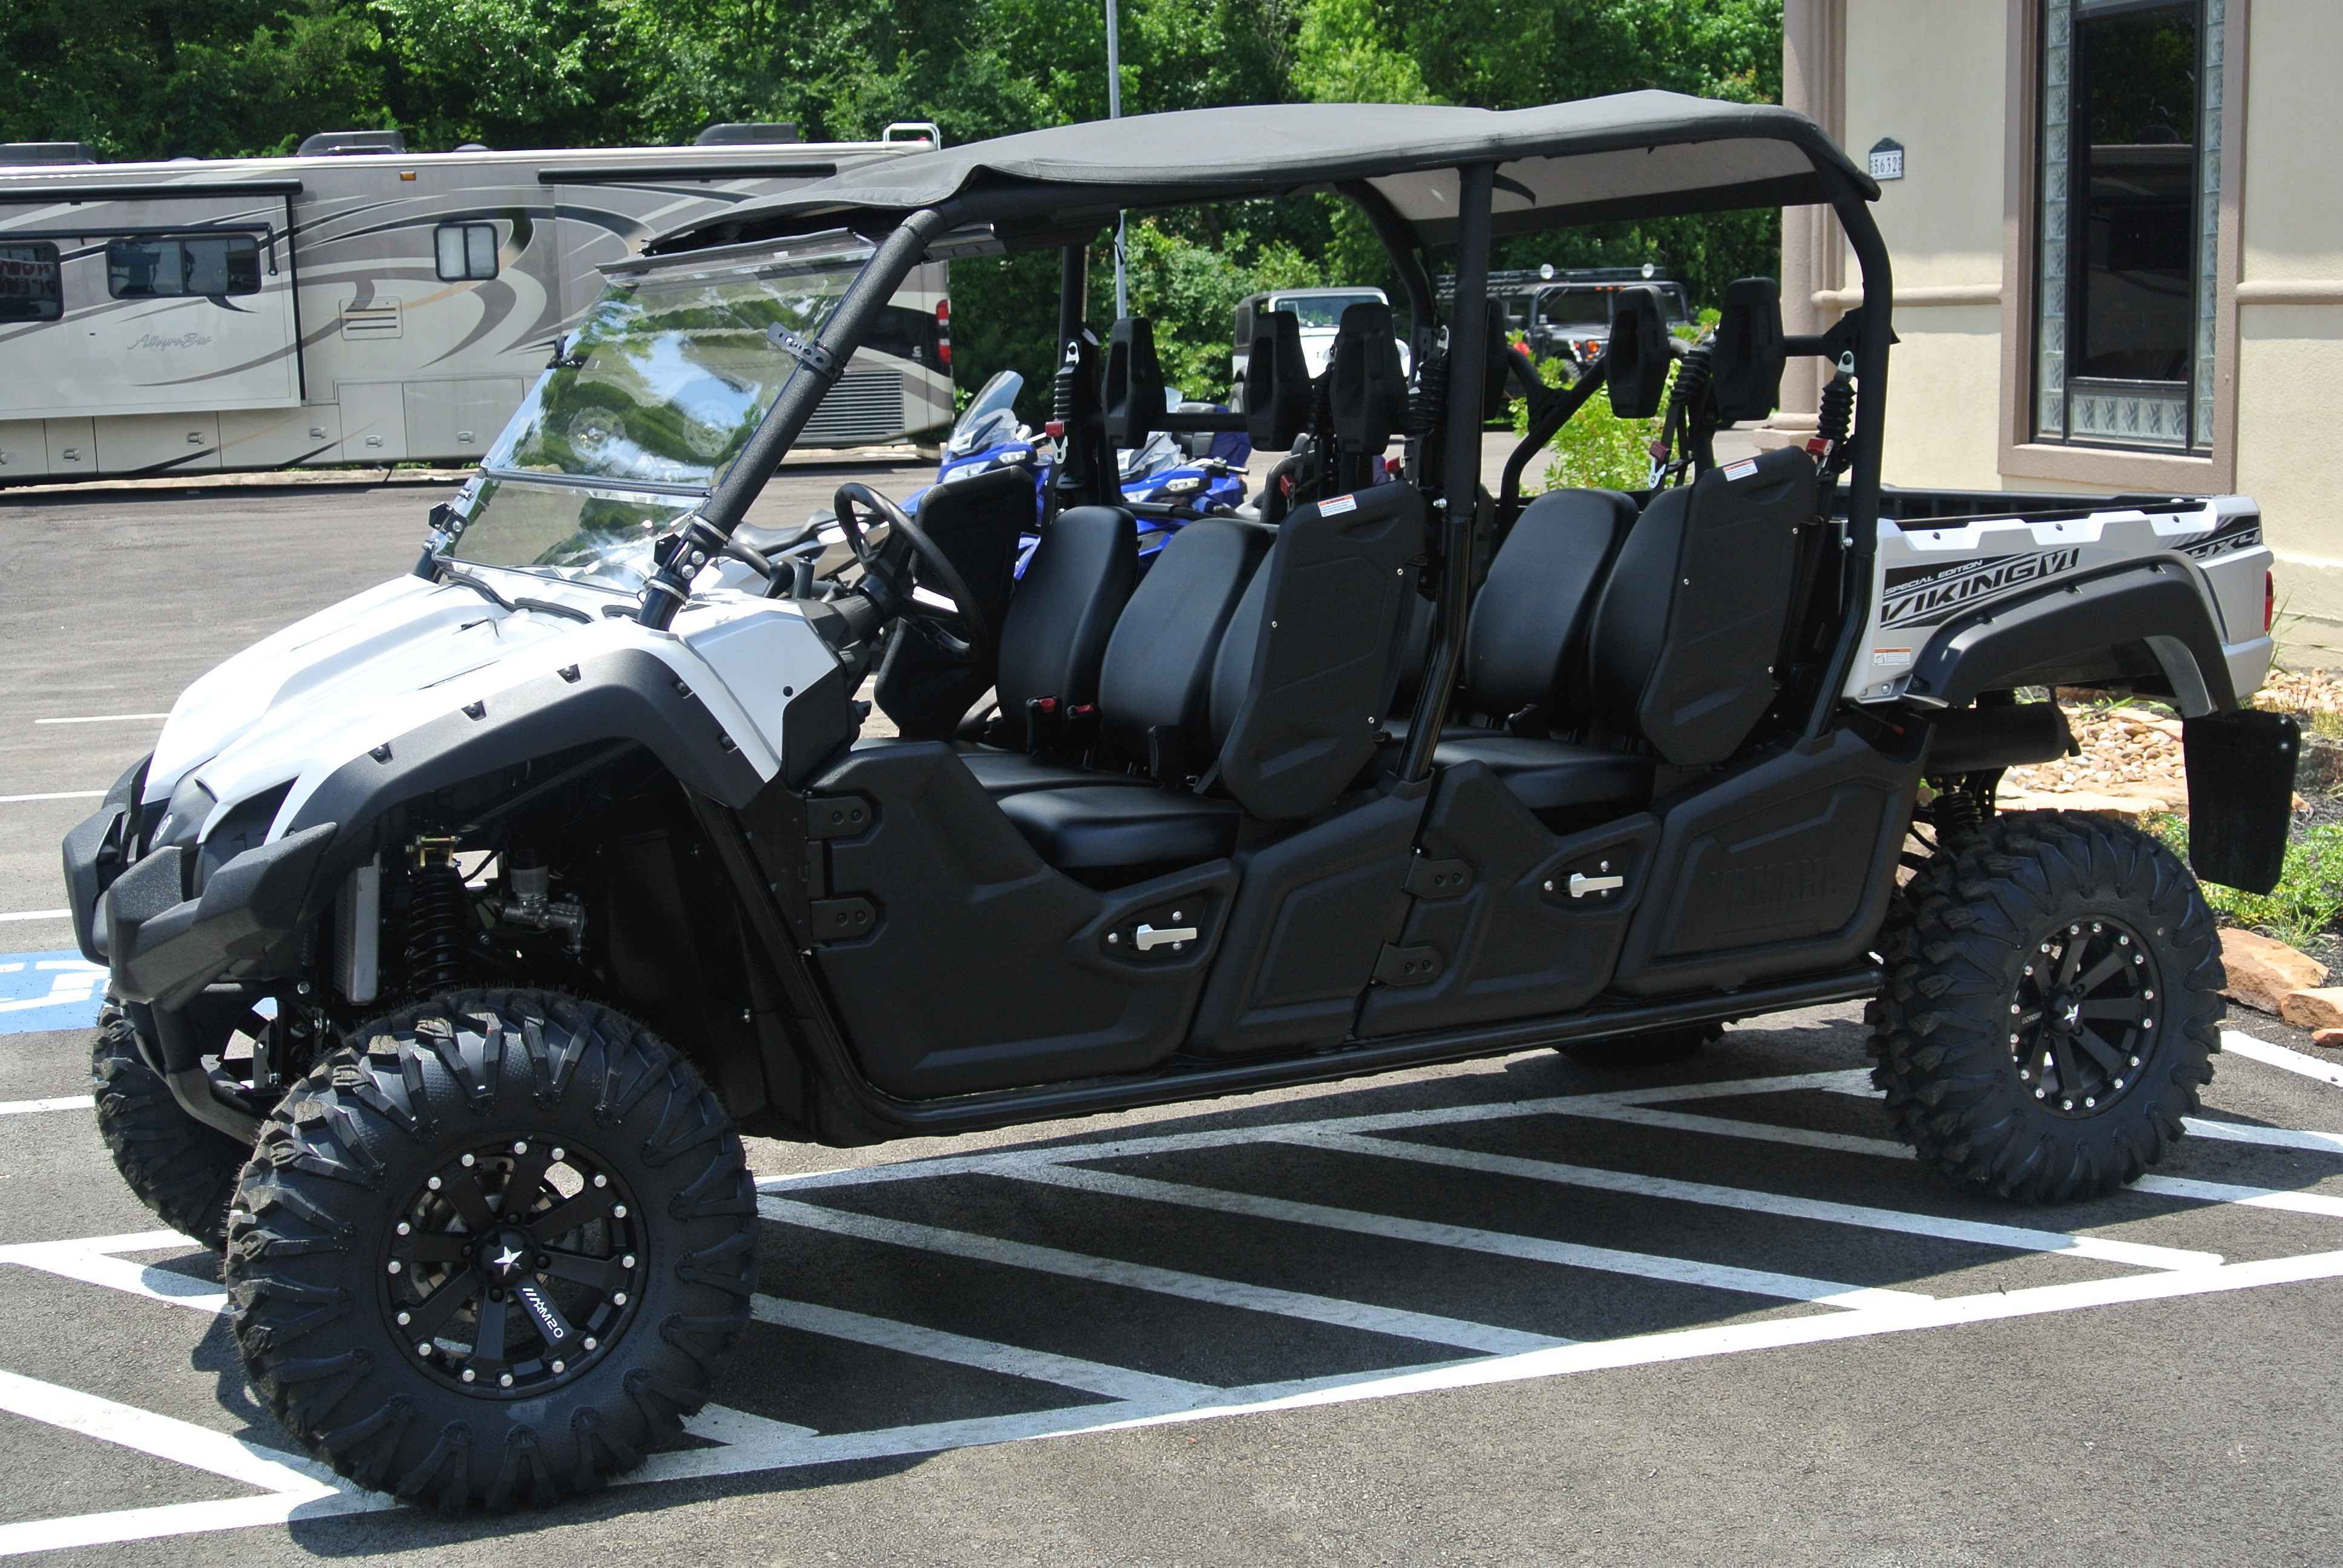 Four Wheelers For Sale Honda >> Used 2015 Yamaha Viking VI EPS SE ATVs For Sale in Texas ...